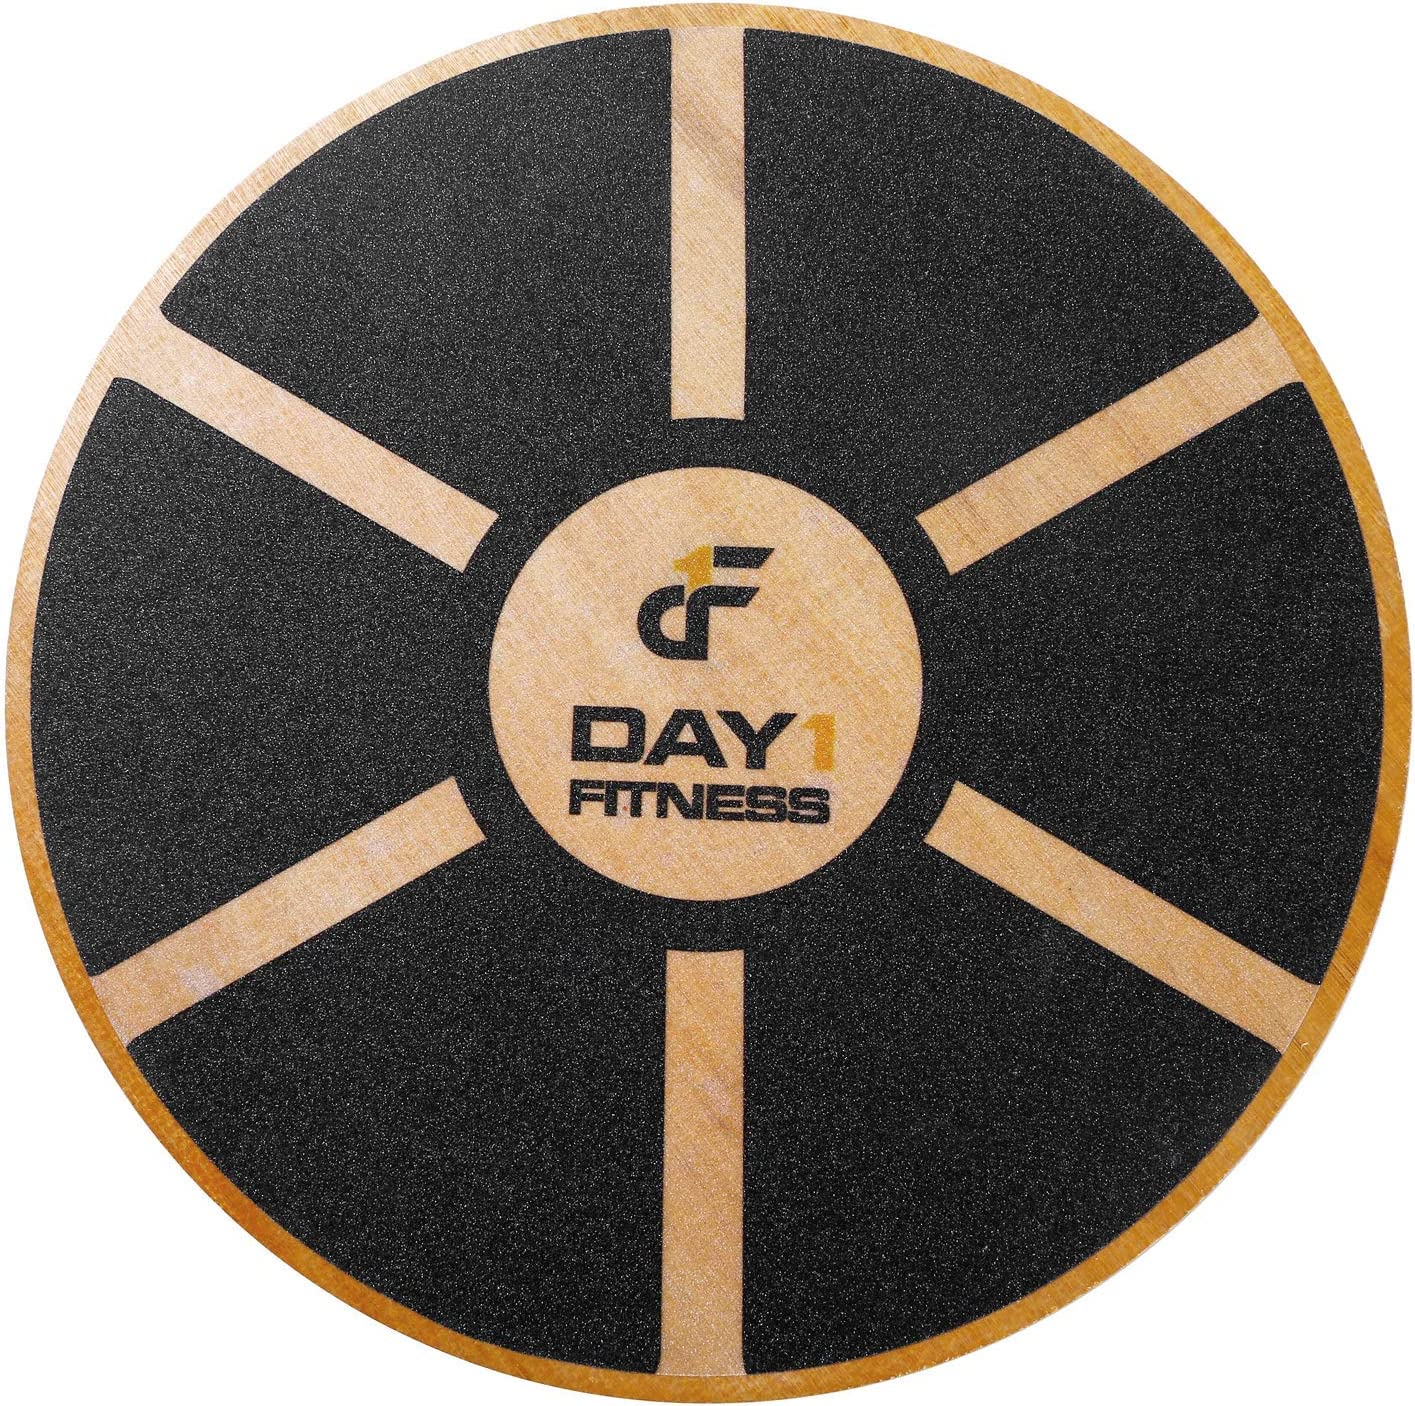 Day 1 Fitness Balance Board, 360 Rotation, for Balance, Coordination, Posture – Large, Wooden Wobble Boards with 15 Tilting Angle for Workouts, Physical Therapy – Premium Core Trainer Equipment